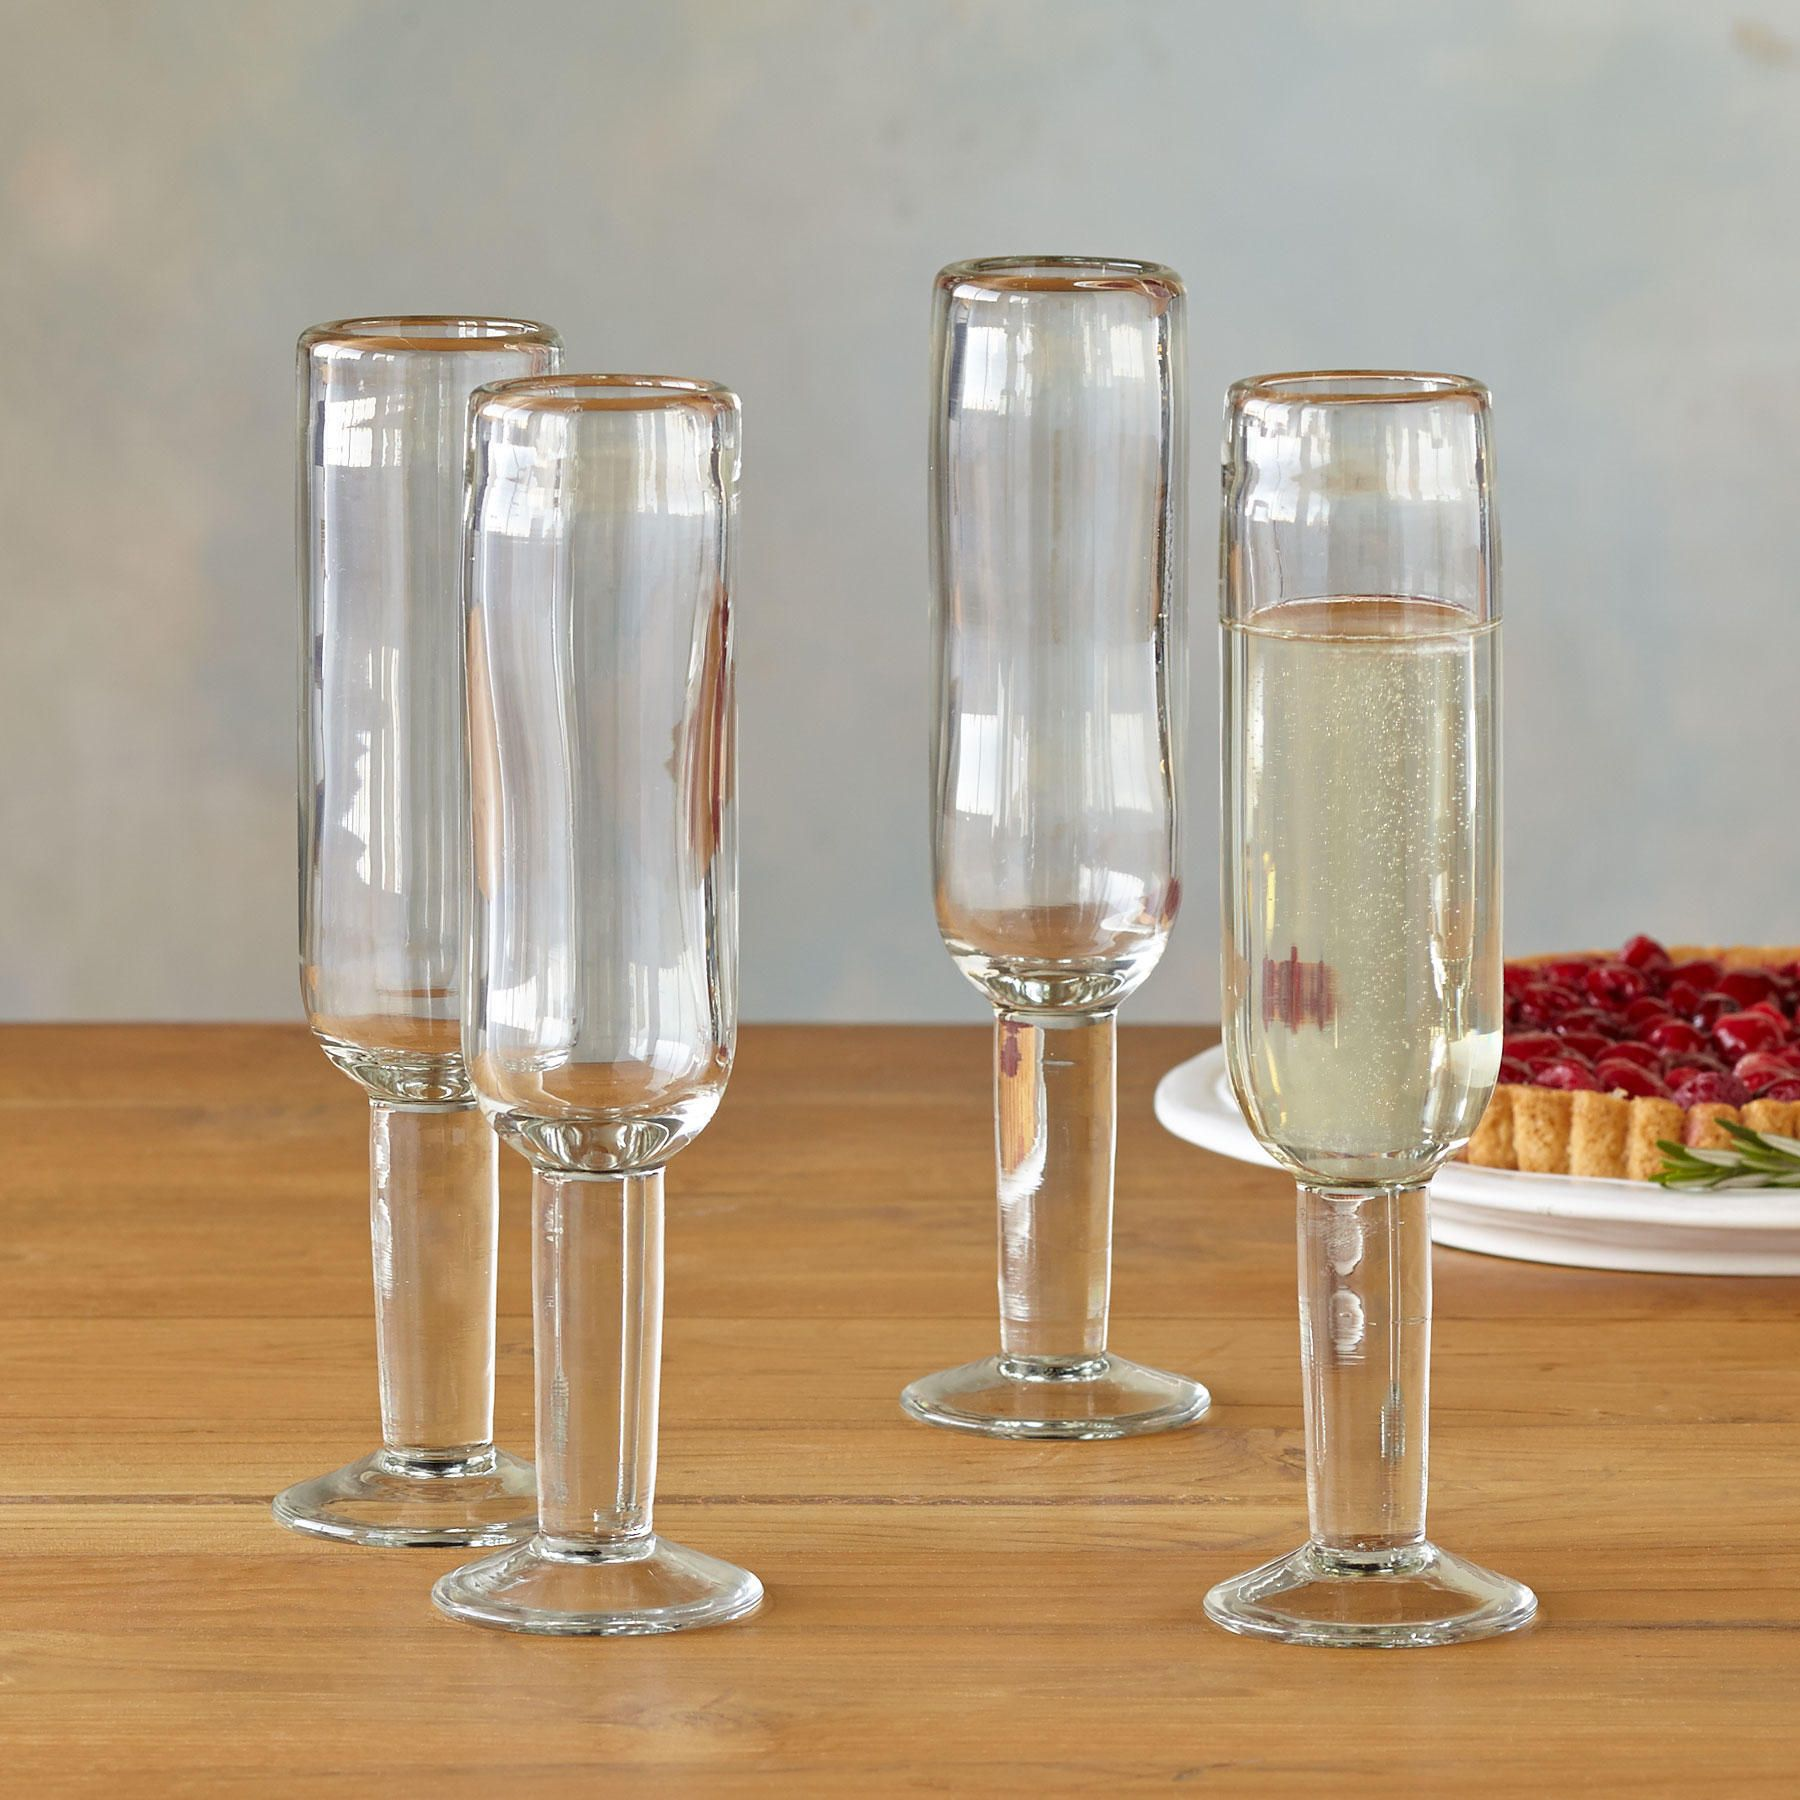 """DARBY CHAMPAGNE GLASSES, SET OF 4�--�Traditional handblown glass takes on modern dimensions in all-ocassion glassware that is as lovely to hold in hand as it is to look at. Holds approx. 5 ounces. Imported. 2-3/4"""" dia. x 8""""H, set of 4."""